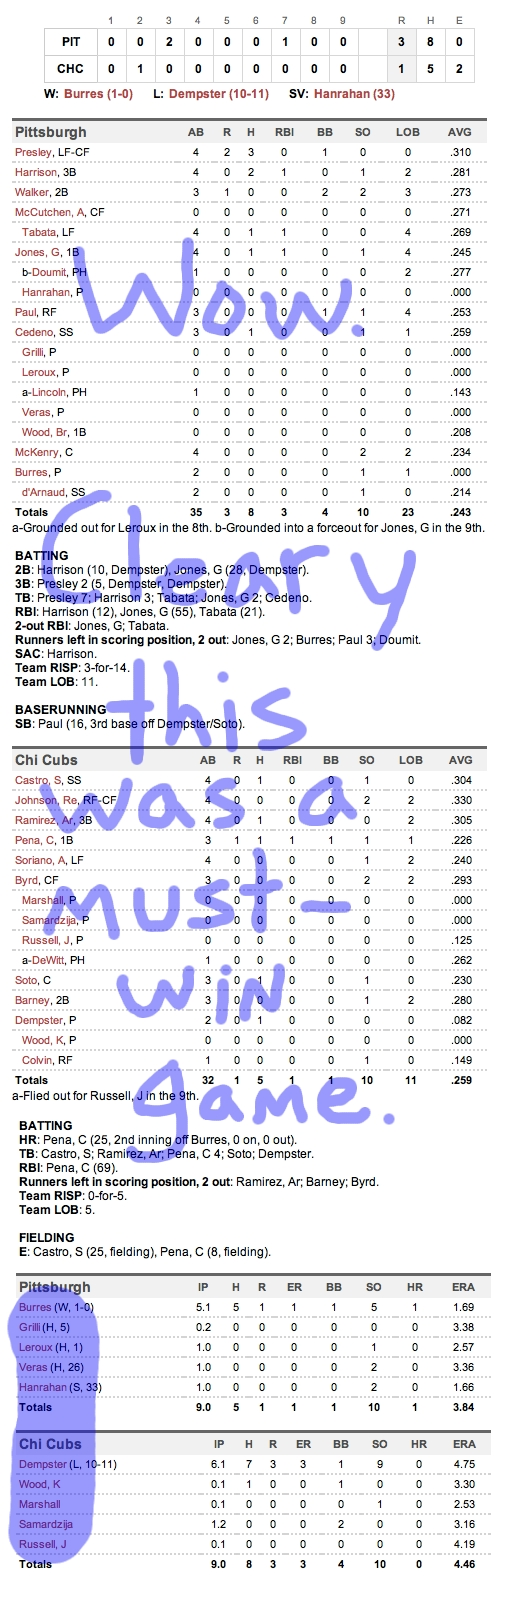 Enhanced Box Score: Pirates 3, Cubs 1 – September 2, 2011